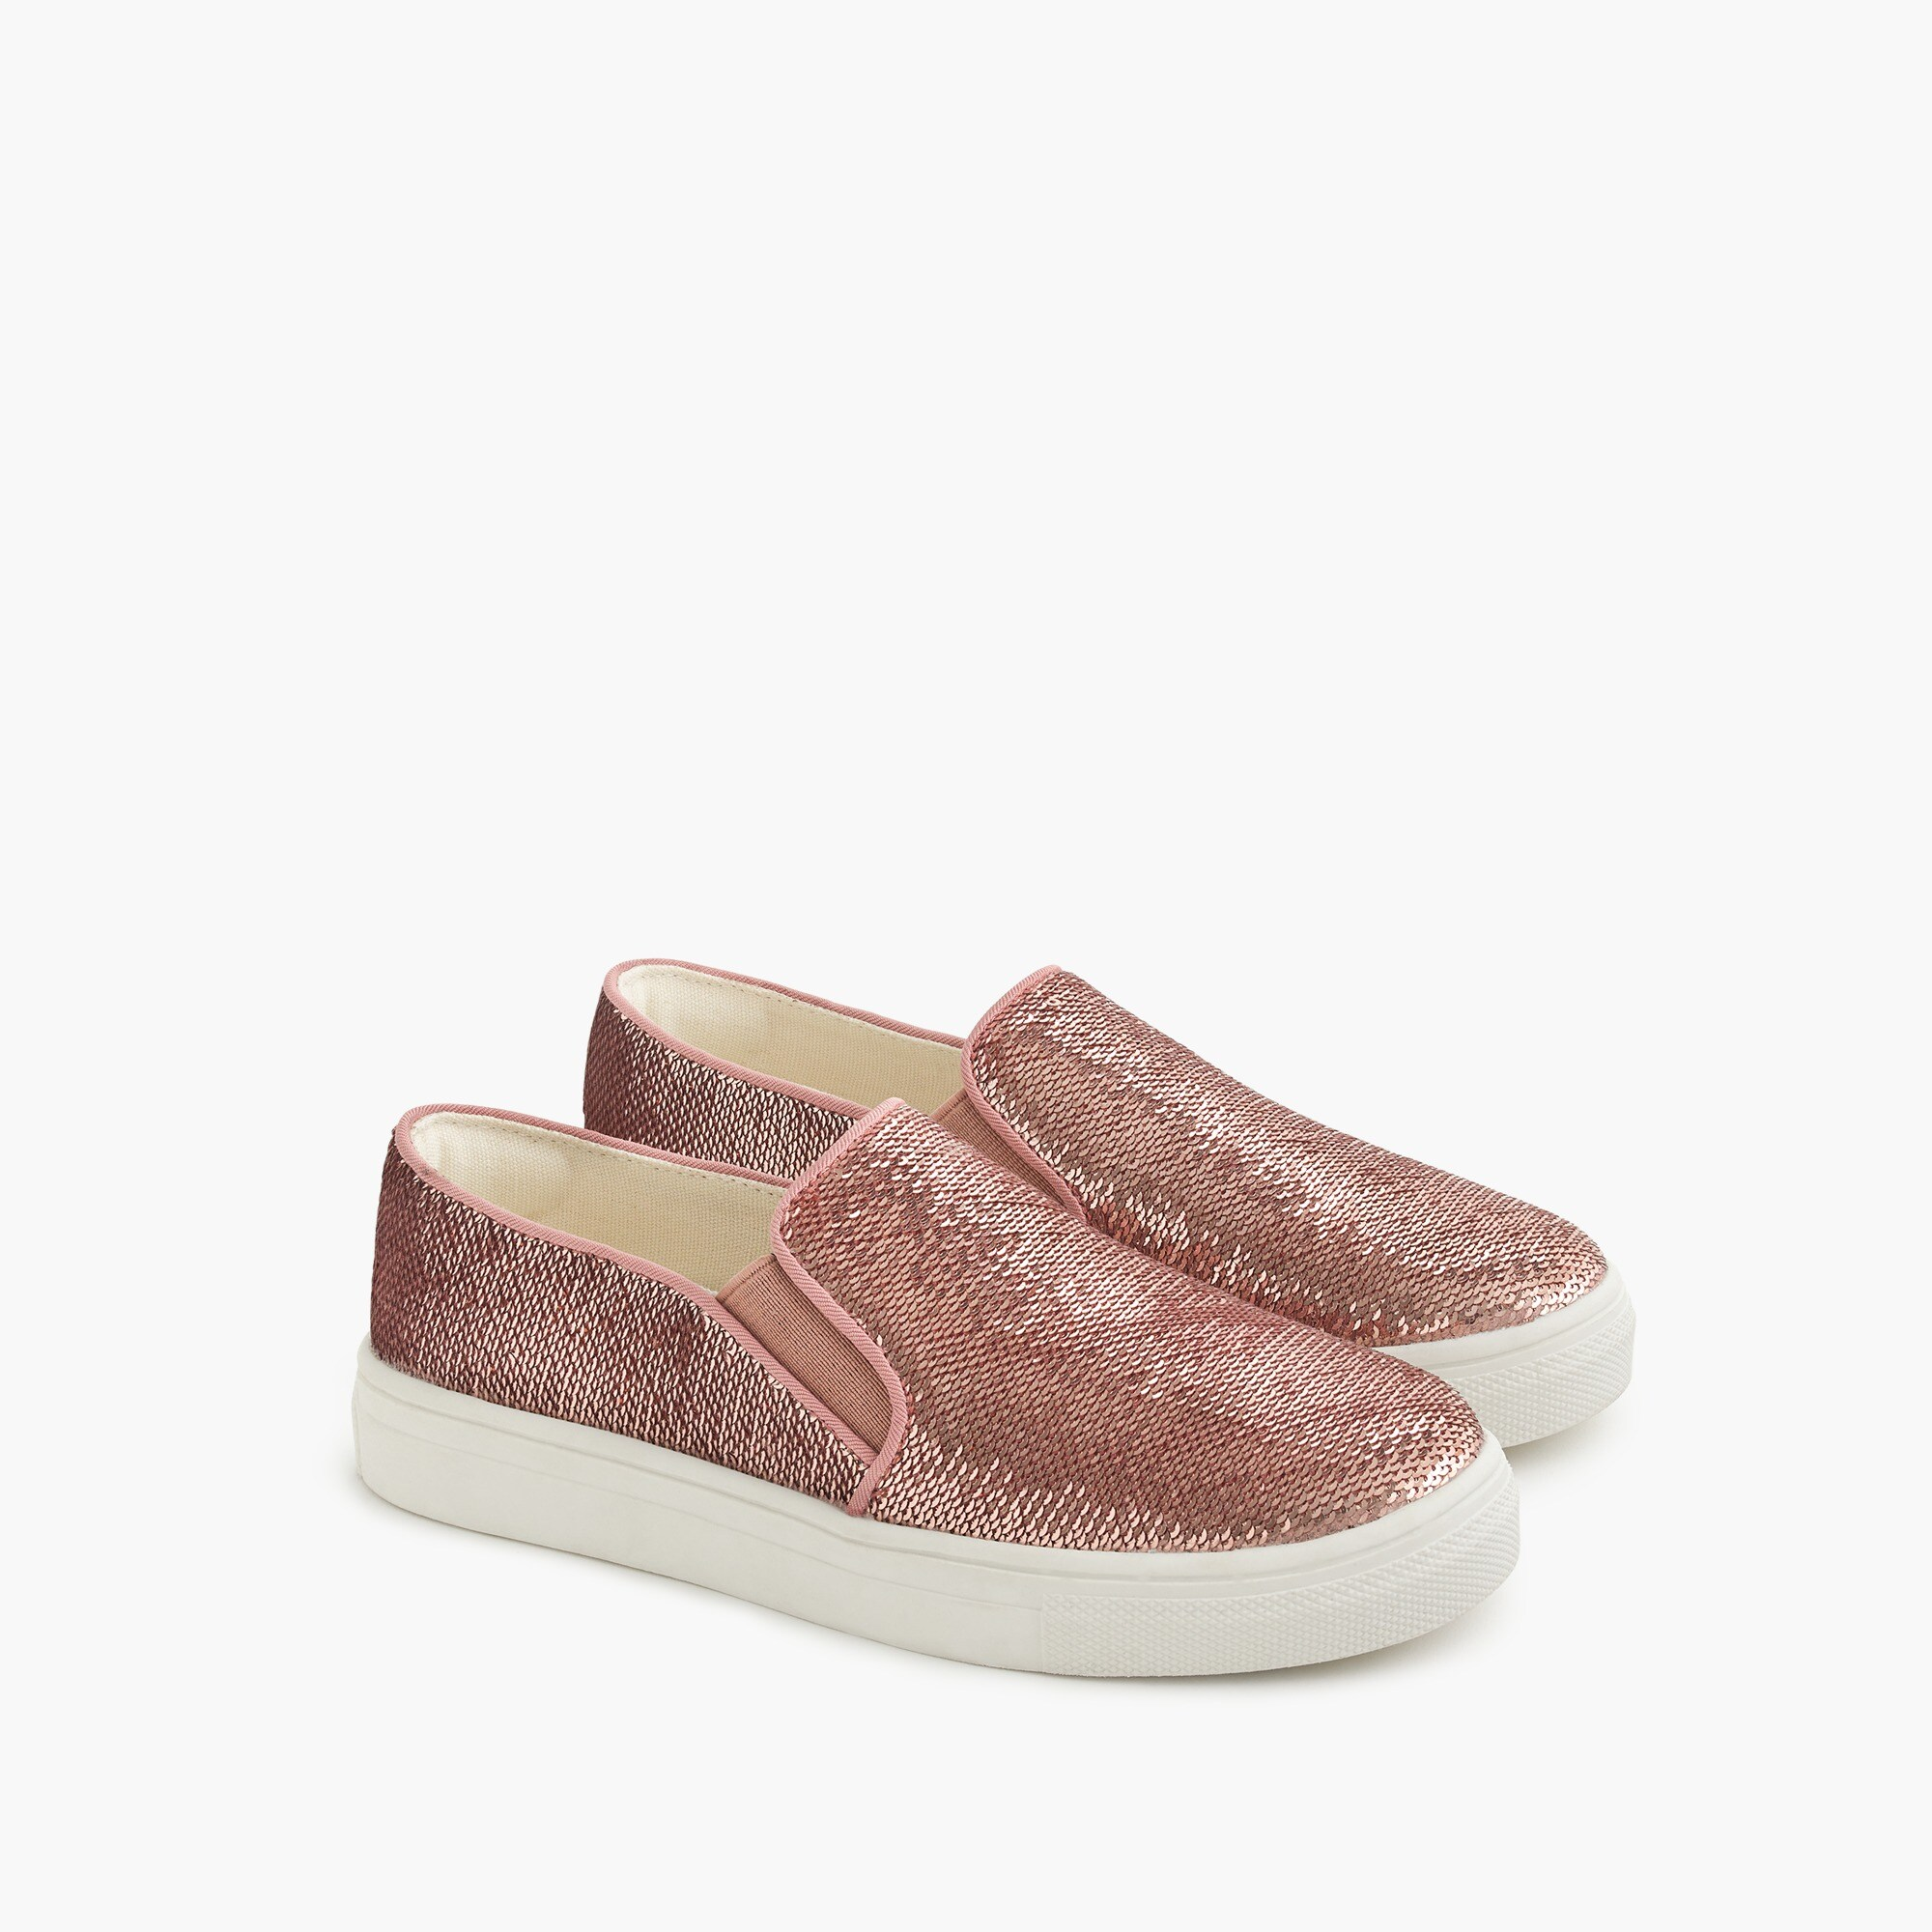 Image 3 for Girls' sequined slip-on sneakers